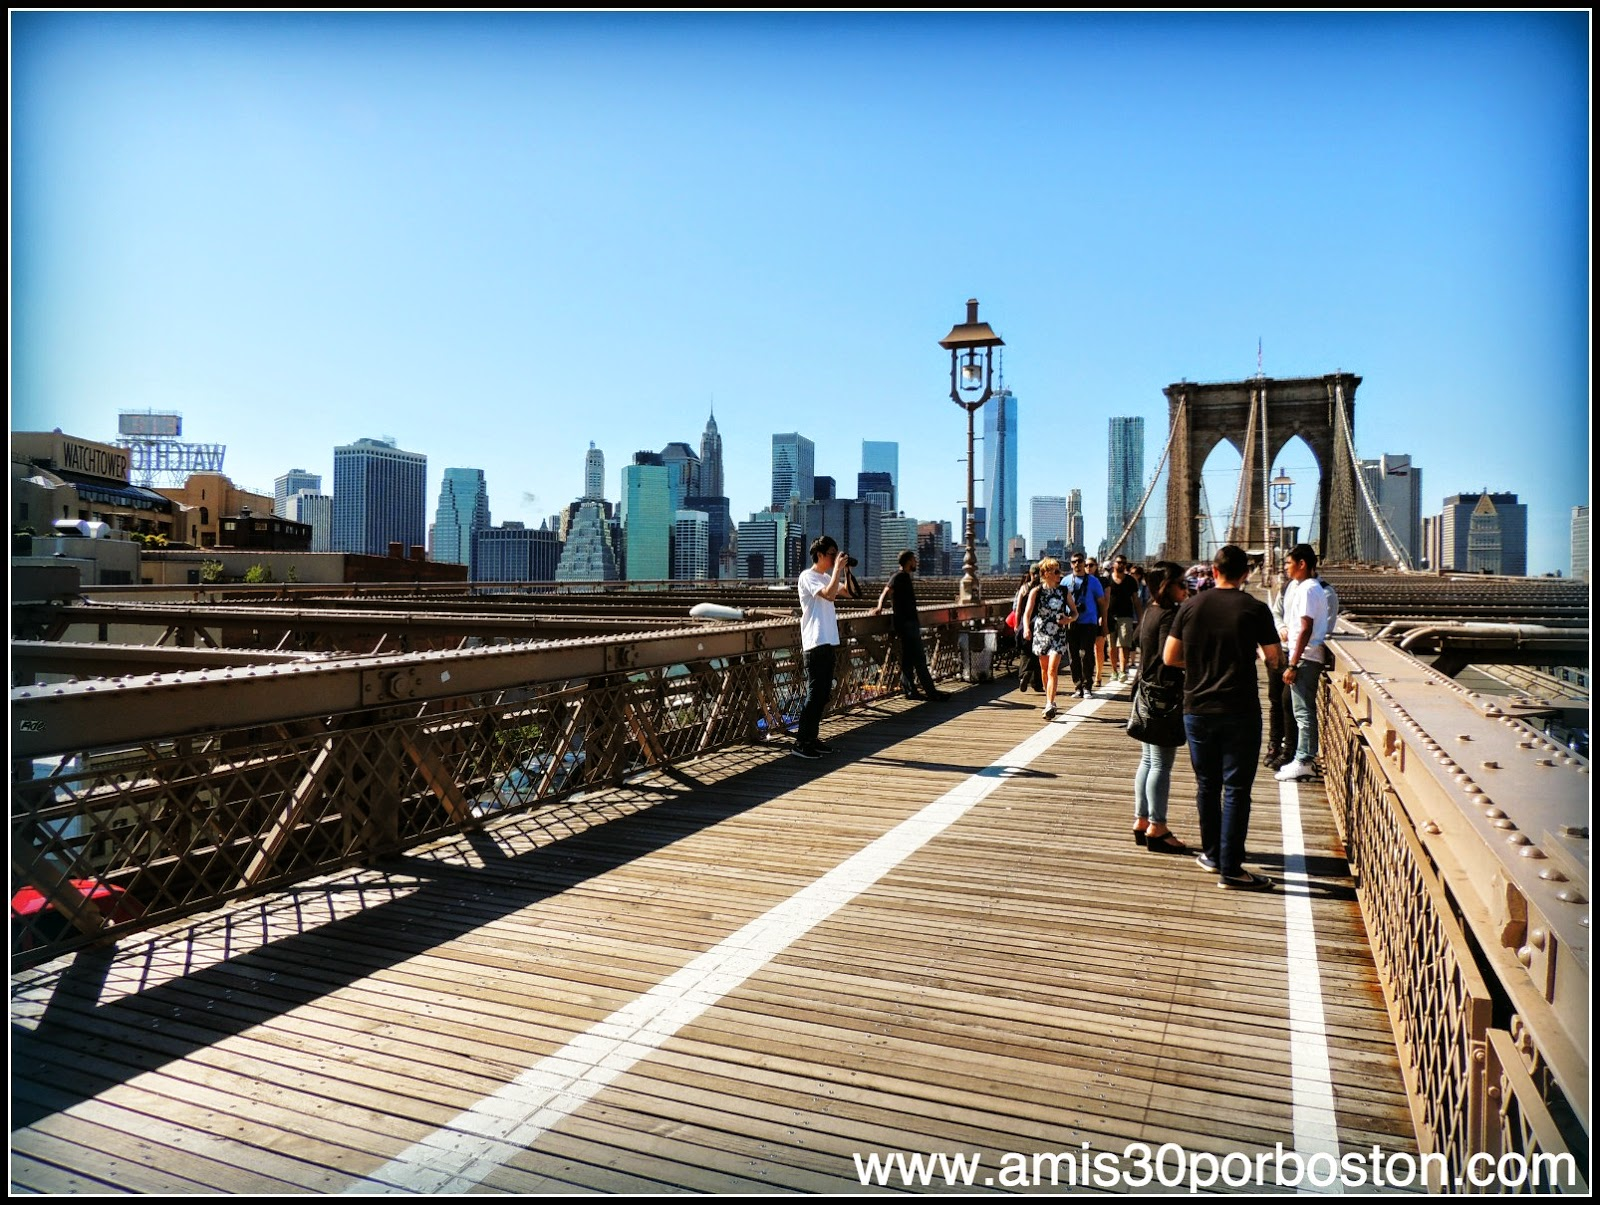 Segunda Visita a Nueva York: Brooklyn Bridge